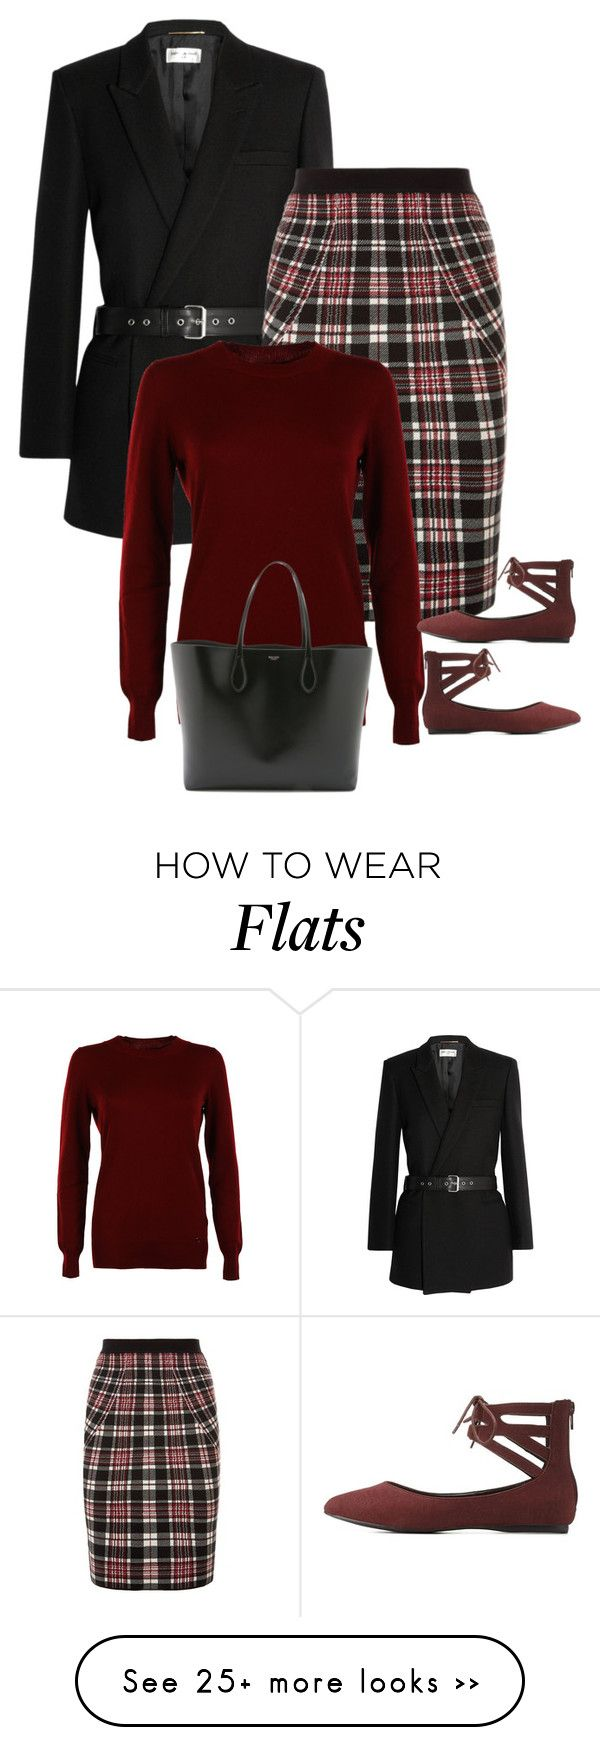 """Commuter"" by ladygroovenyc on Polyvore featuring Yves Saint Laurent, Alexander McQueen, Gucci, Rochas and Charlotte Russe"